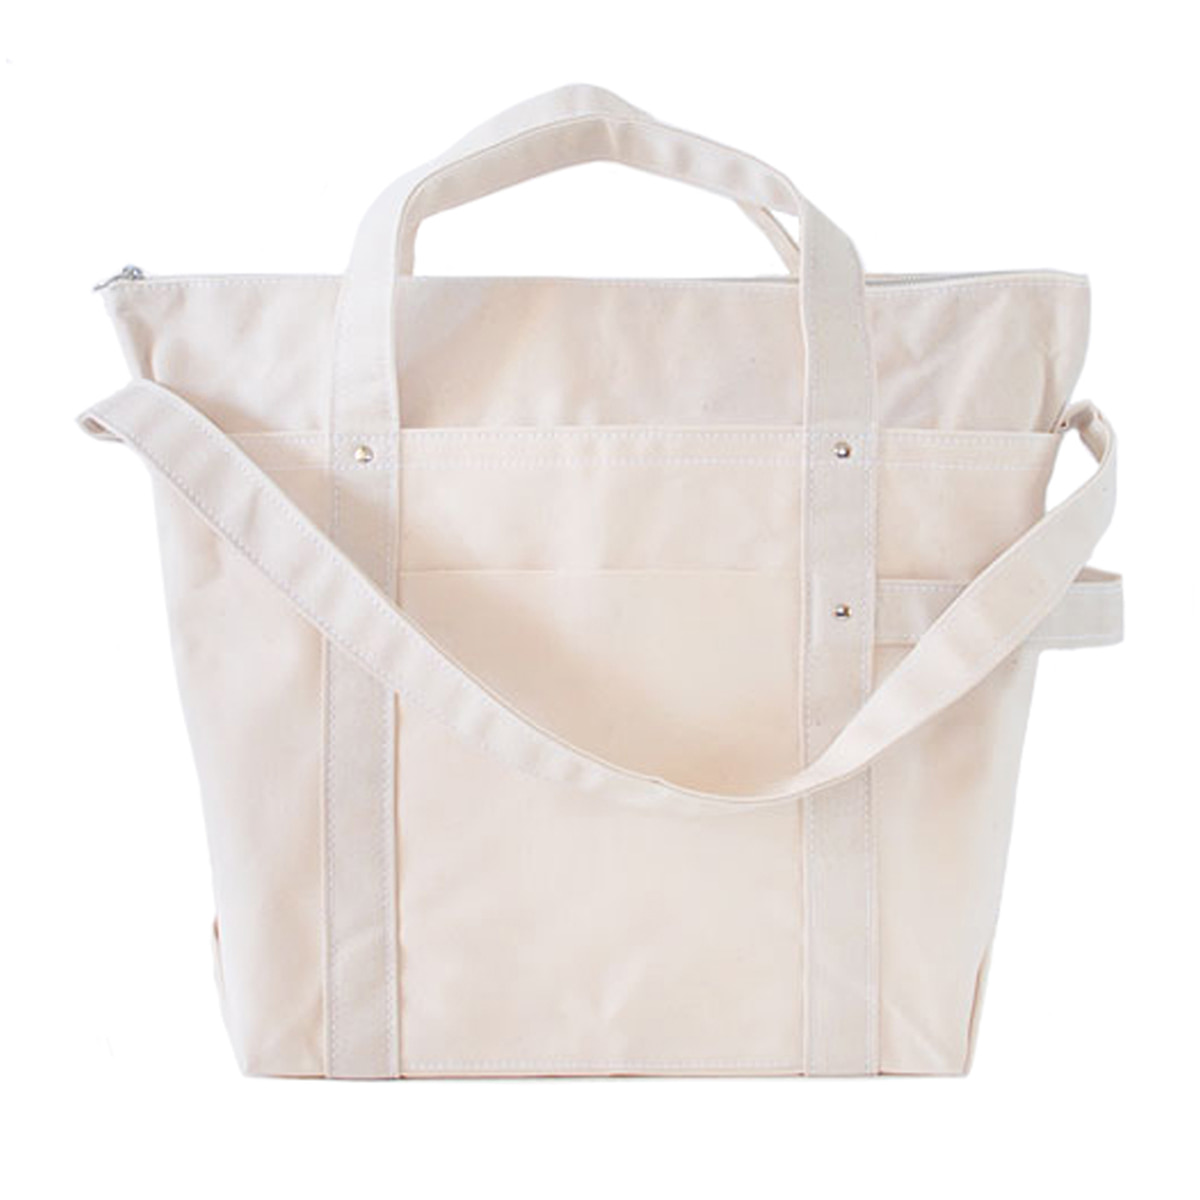 [TEMBEA] HARVEST TOTE X-LARGE 'NATURAL'